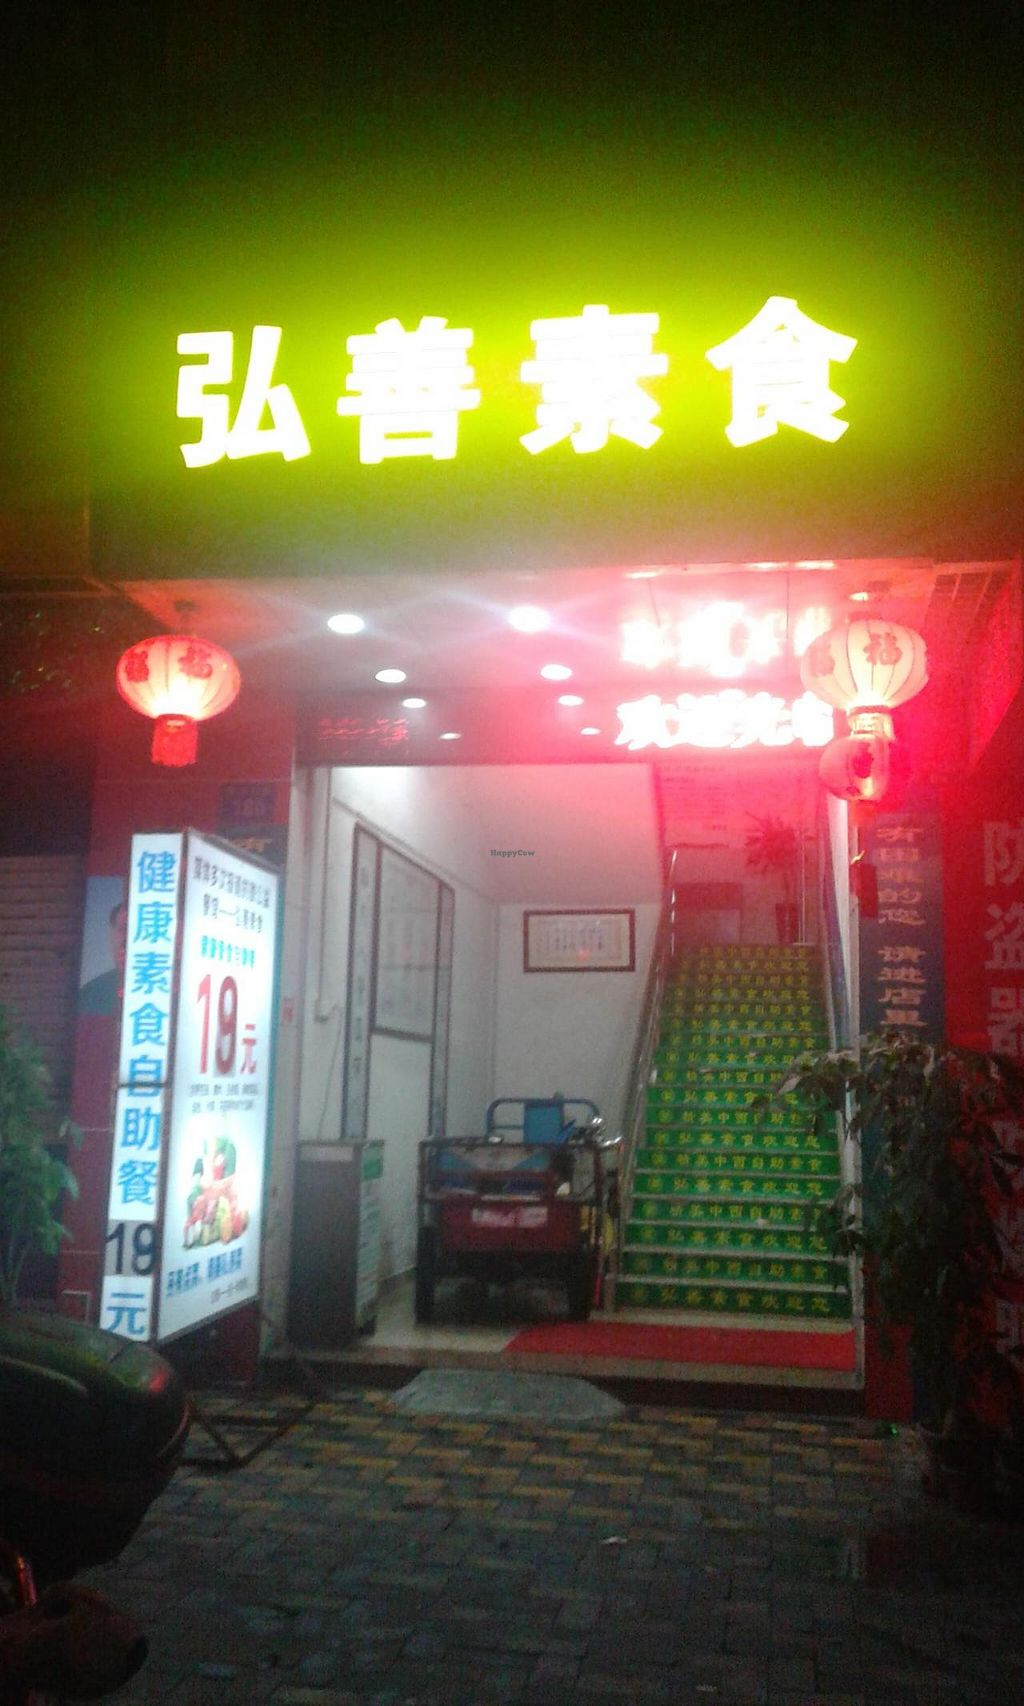 """Photo of Sheng Hai - Saint Love Vegetarian  by <a href=""""/members/profile/Darteous"""">Darteous</a> <br/>entrance <br/> May 23, 2015  - <a href='/contact/abuse/image/18341/103135'>Report</a>"""